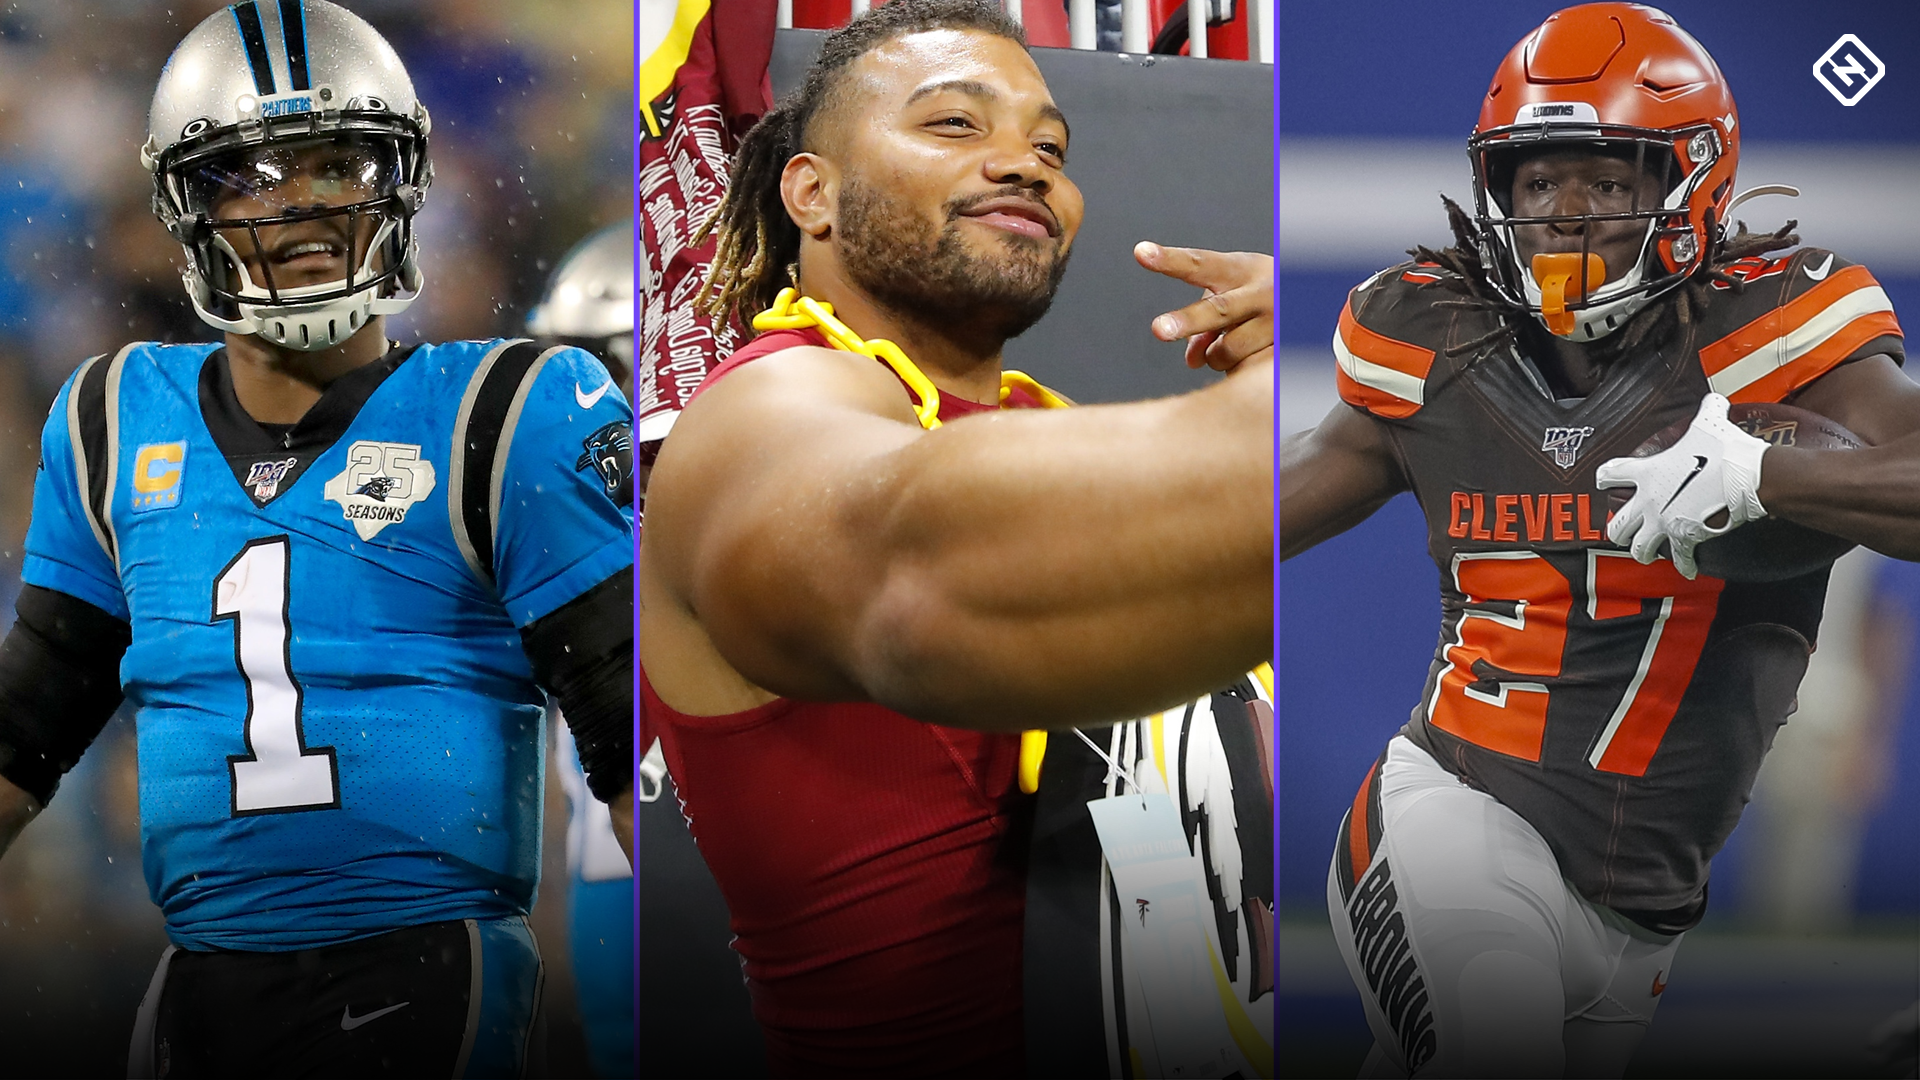 Fantasy Waiver Wire Week 8: Cam Newton, Derrius Guice, Kareem Hunt among free agent pickups worth stashing